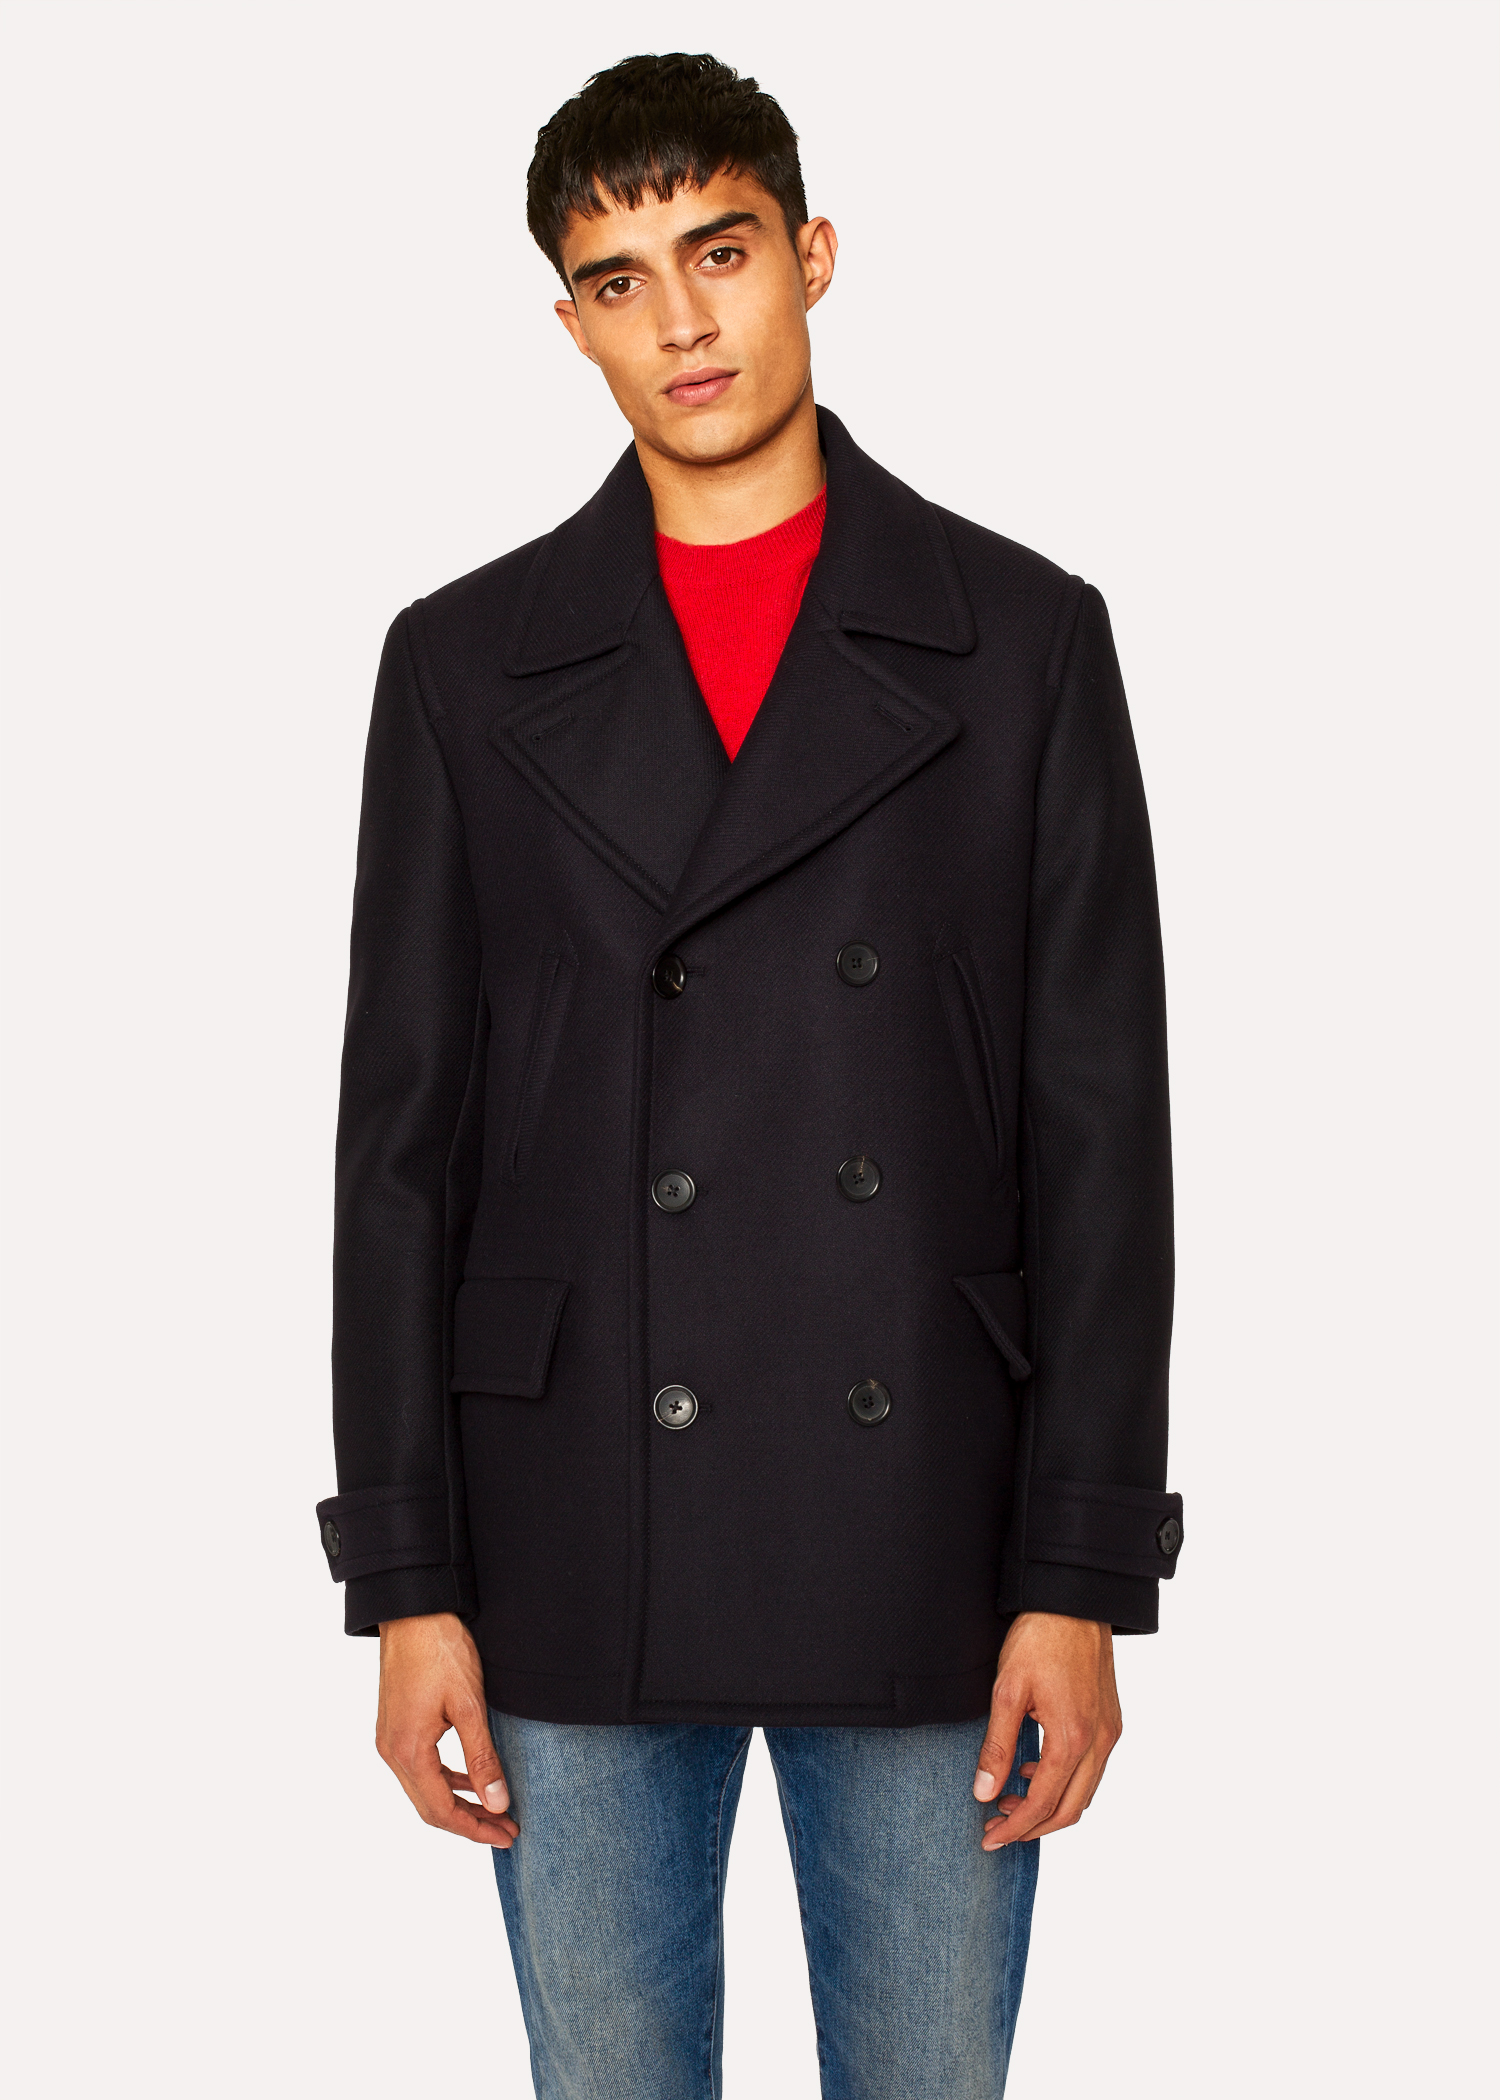 ac20dee0875 Men s Dark Navy Wool-Cashmere Pea Coat - Paul Smith US